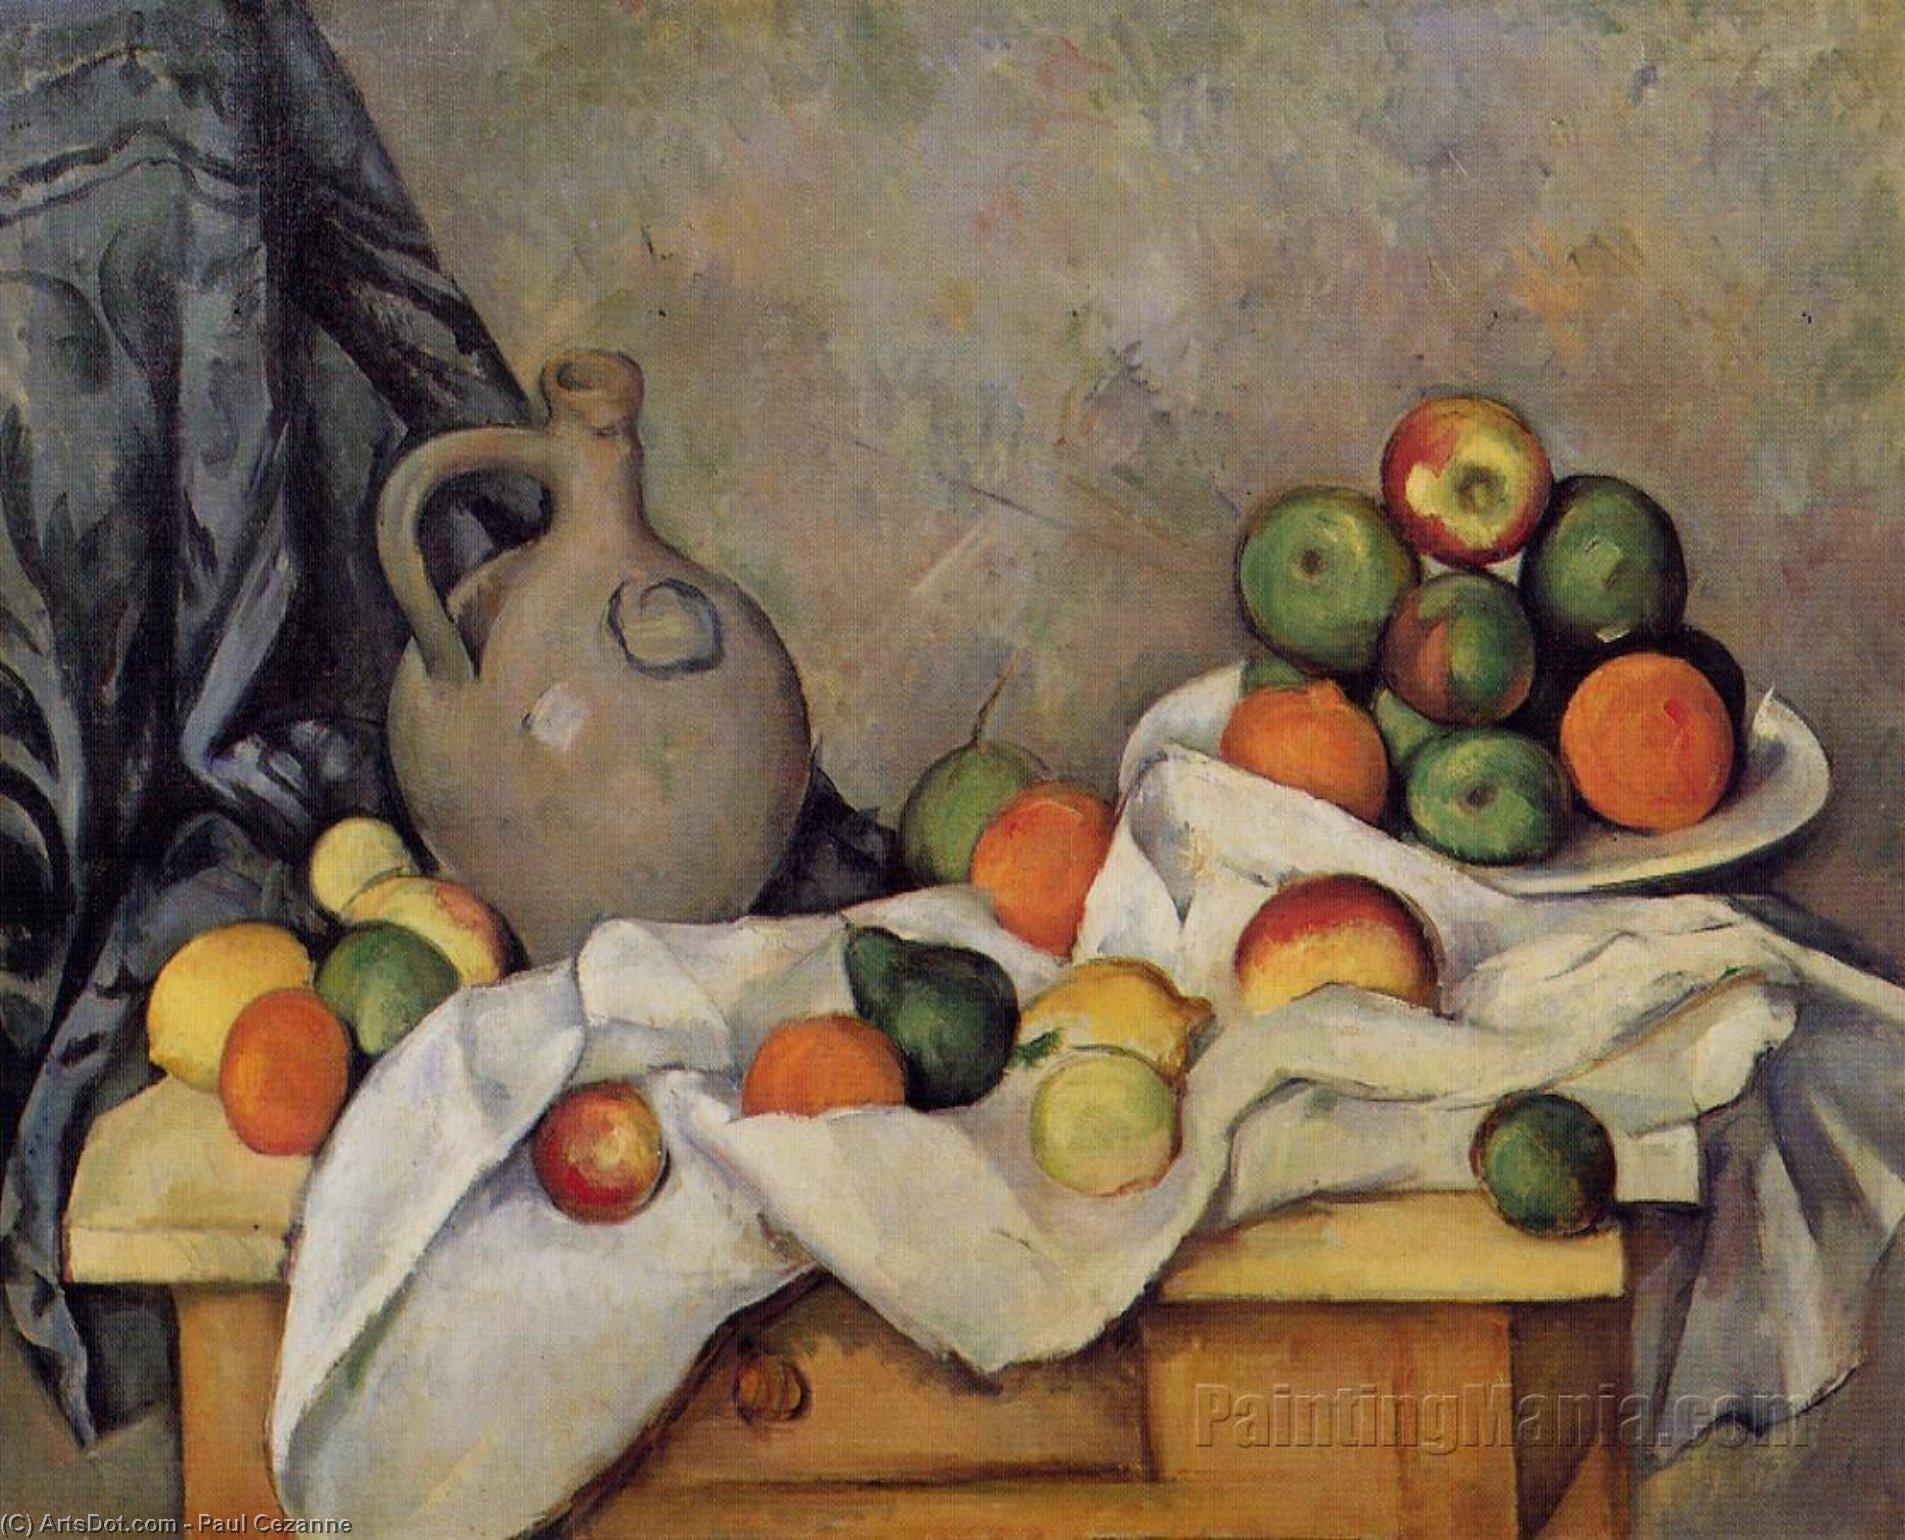 Wikioo.org - The Encyclopedia of Fine Arts - Painting, Artwork by Paul Cezanne - Curtain, Jug and Fruit